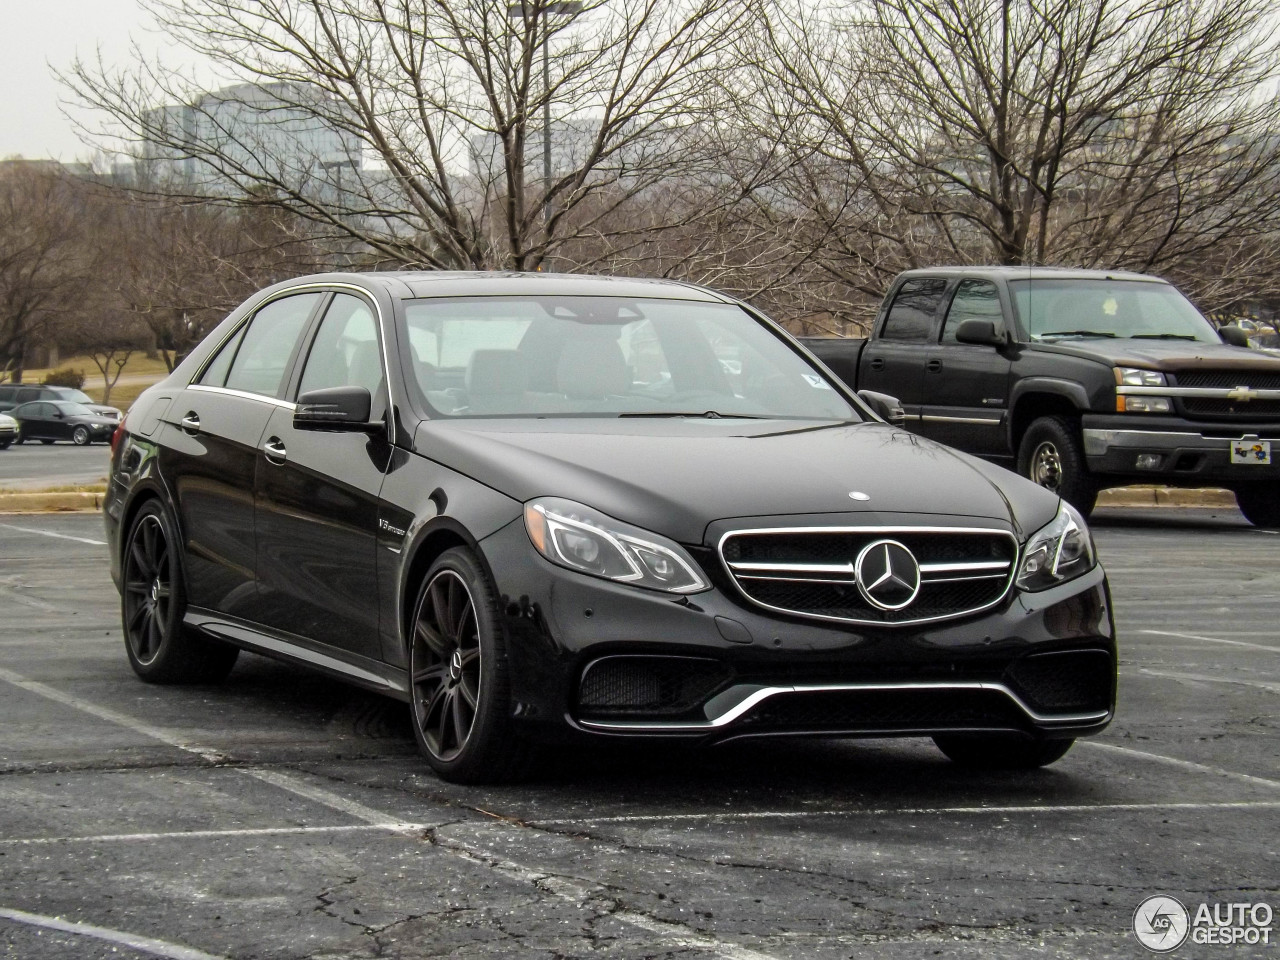 mercedes benz e 63 amg w212 2013 22 december 2013 autogespot. Black Bedroom Furniture Sets. Home Design Ideas